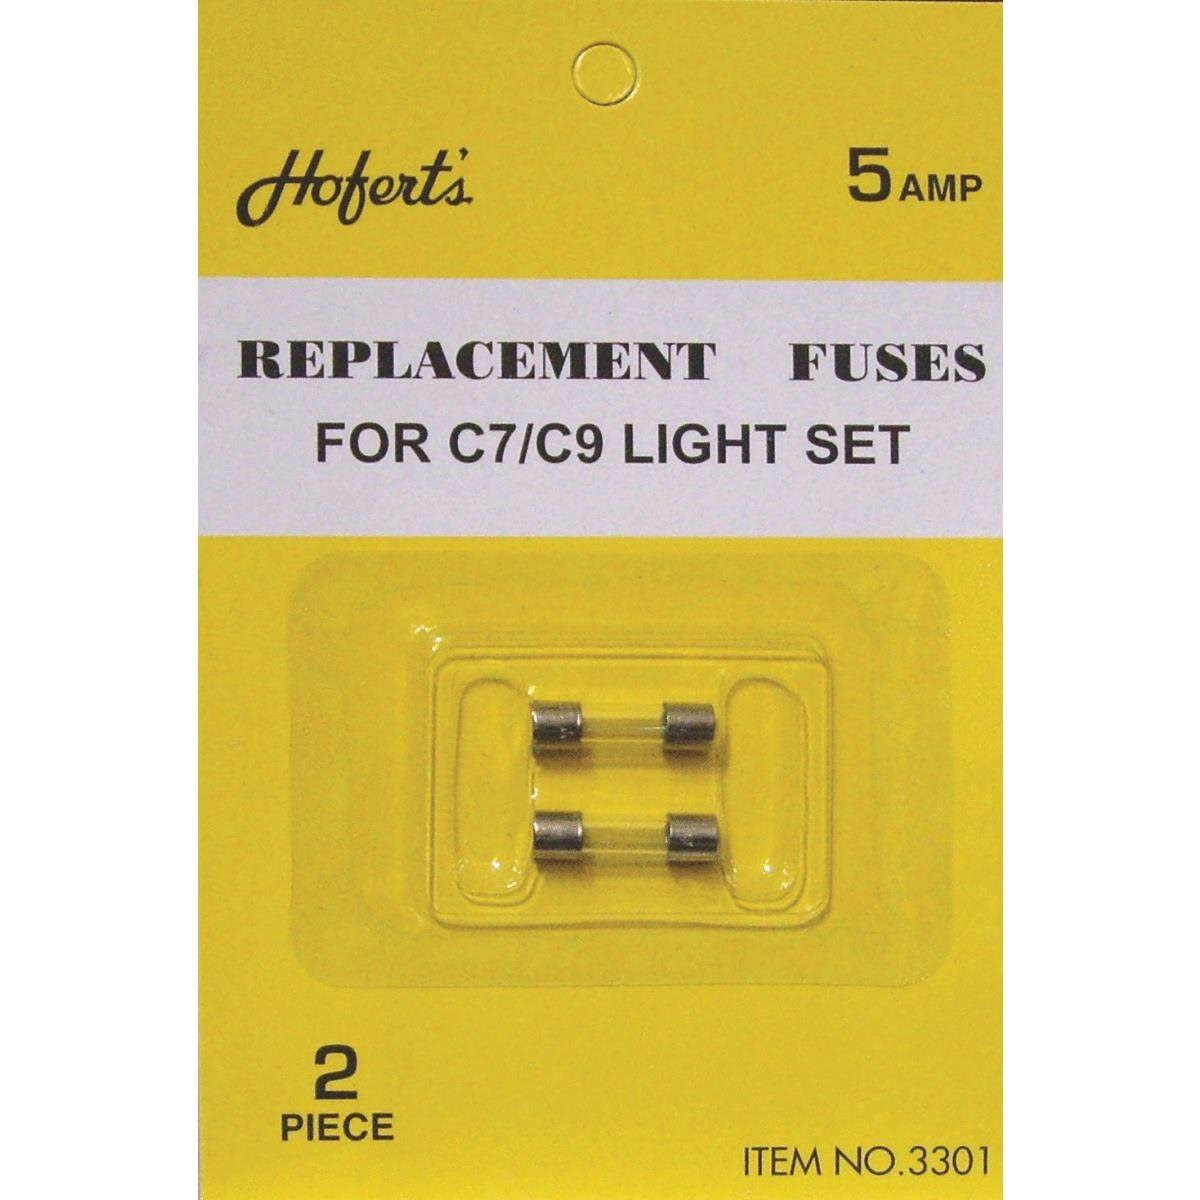 J Hofert 3301 Christmas Light Set Fuses